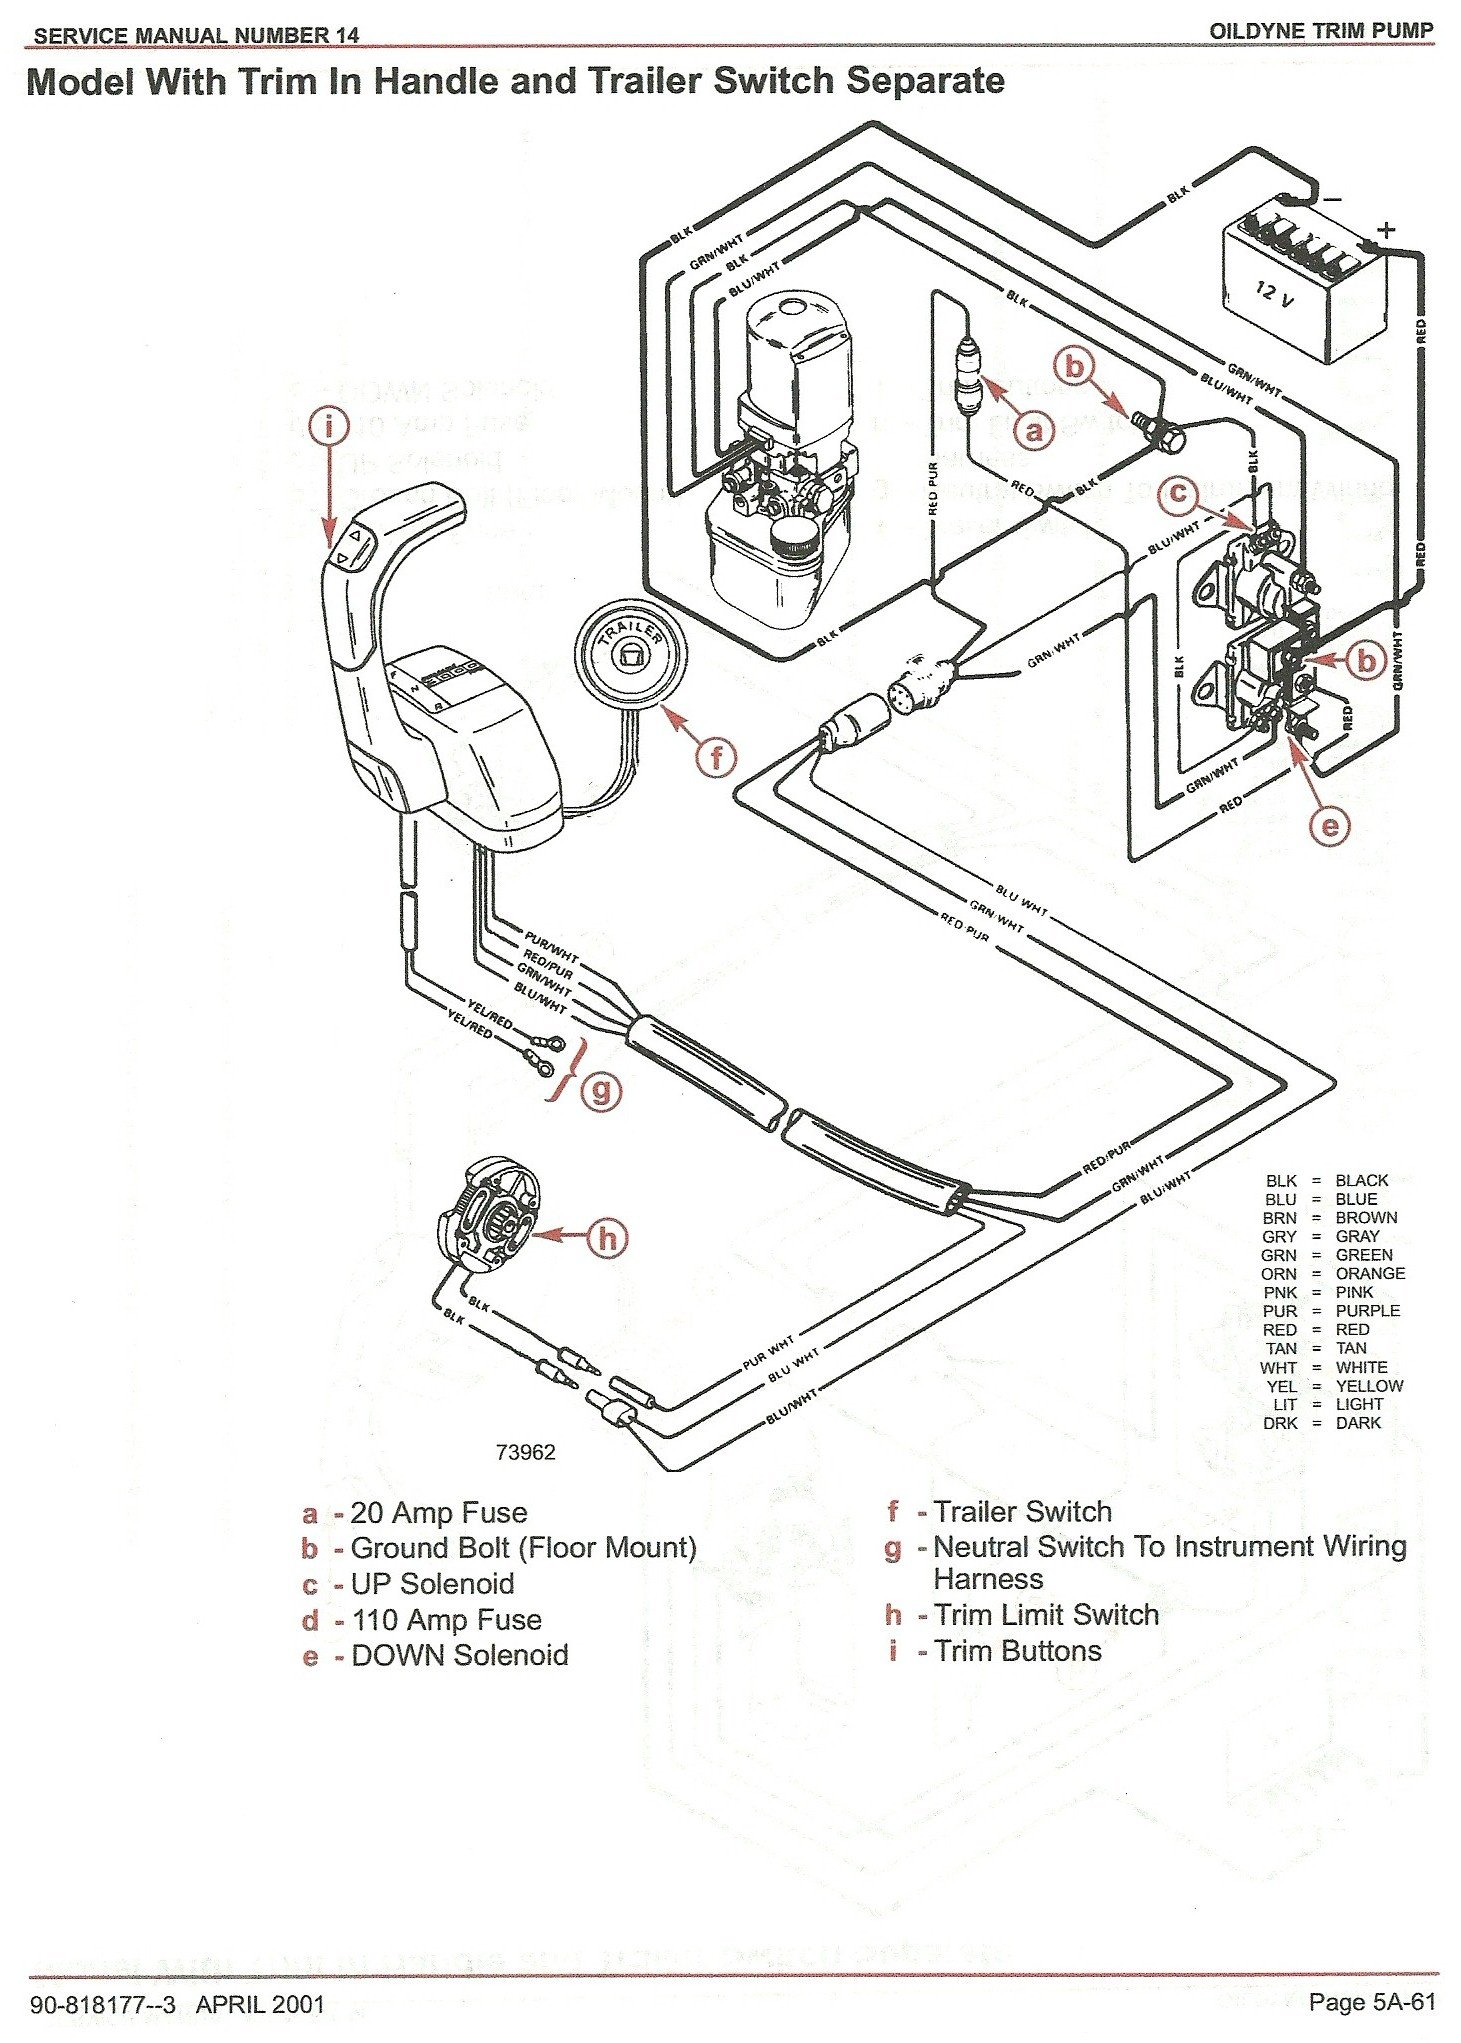 Mercruiser 260 Wiring Diagram from ww2.justanswer.com